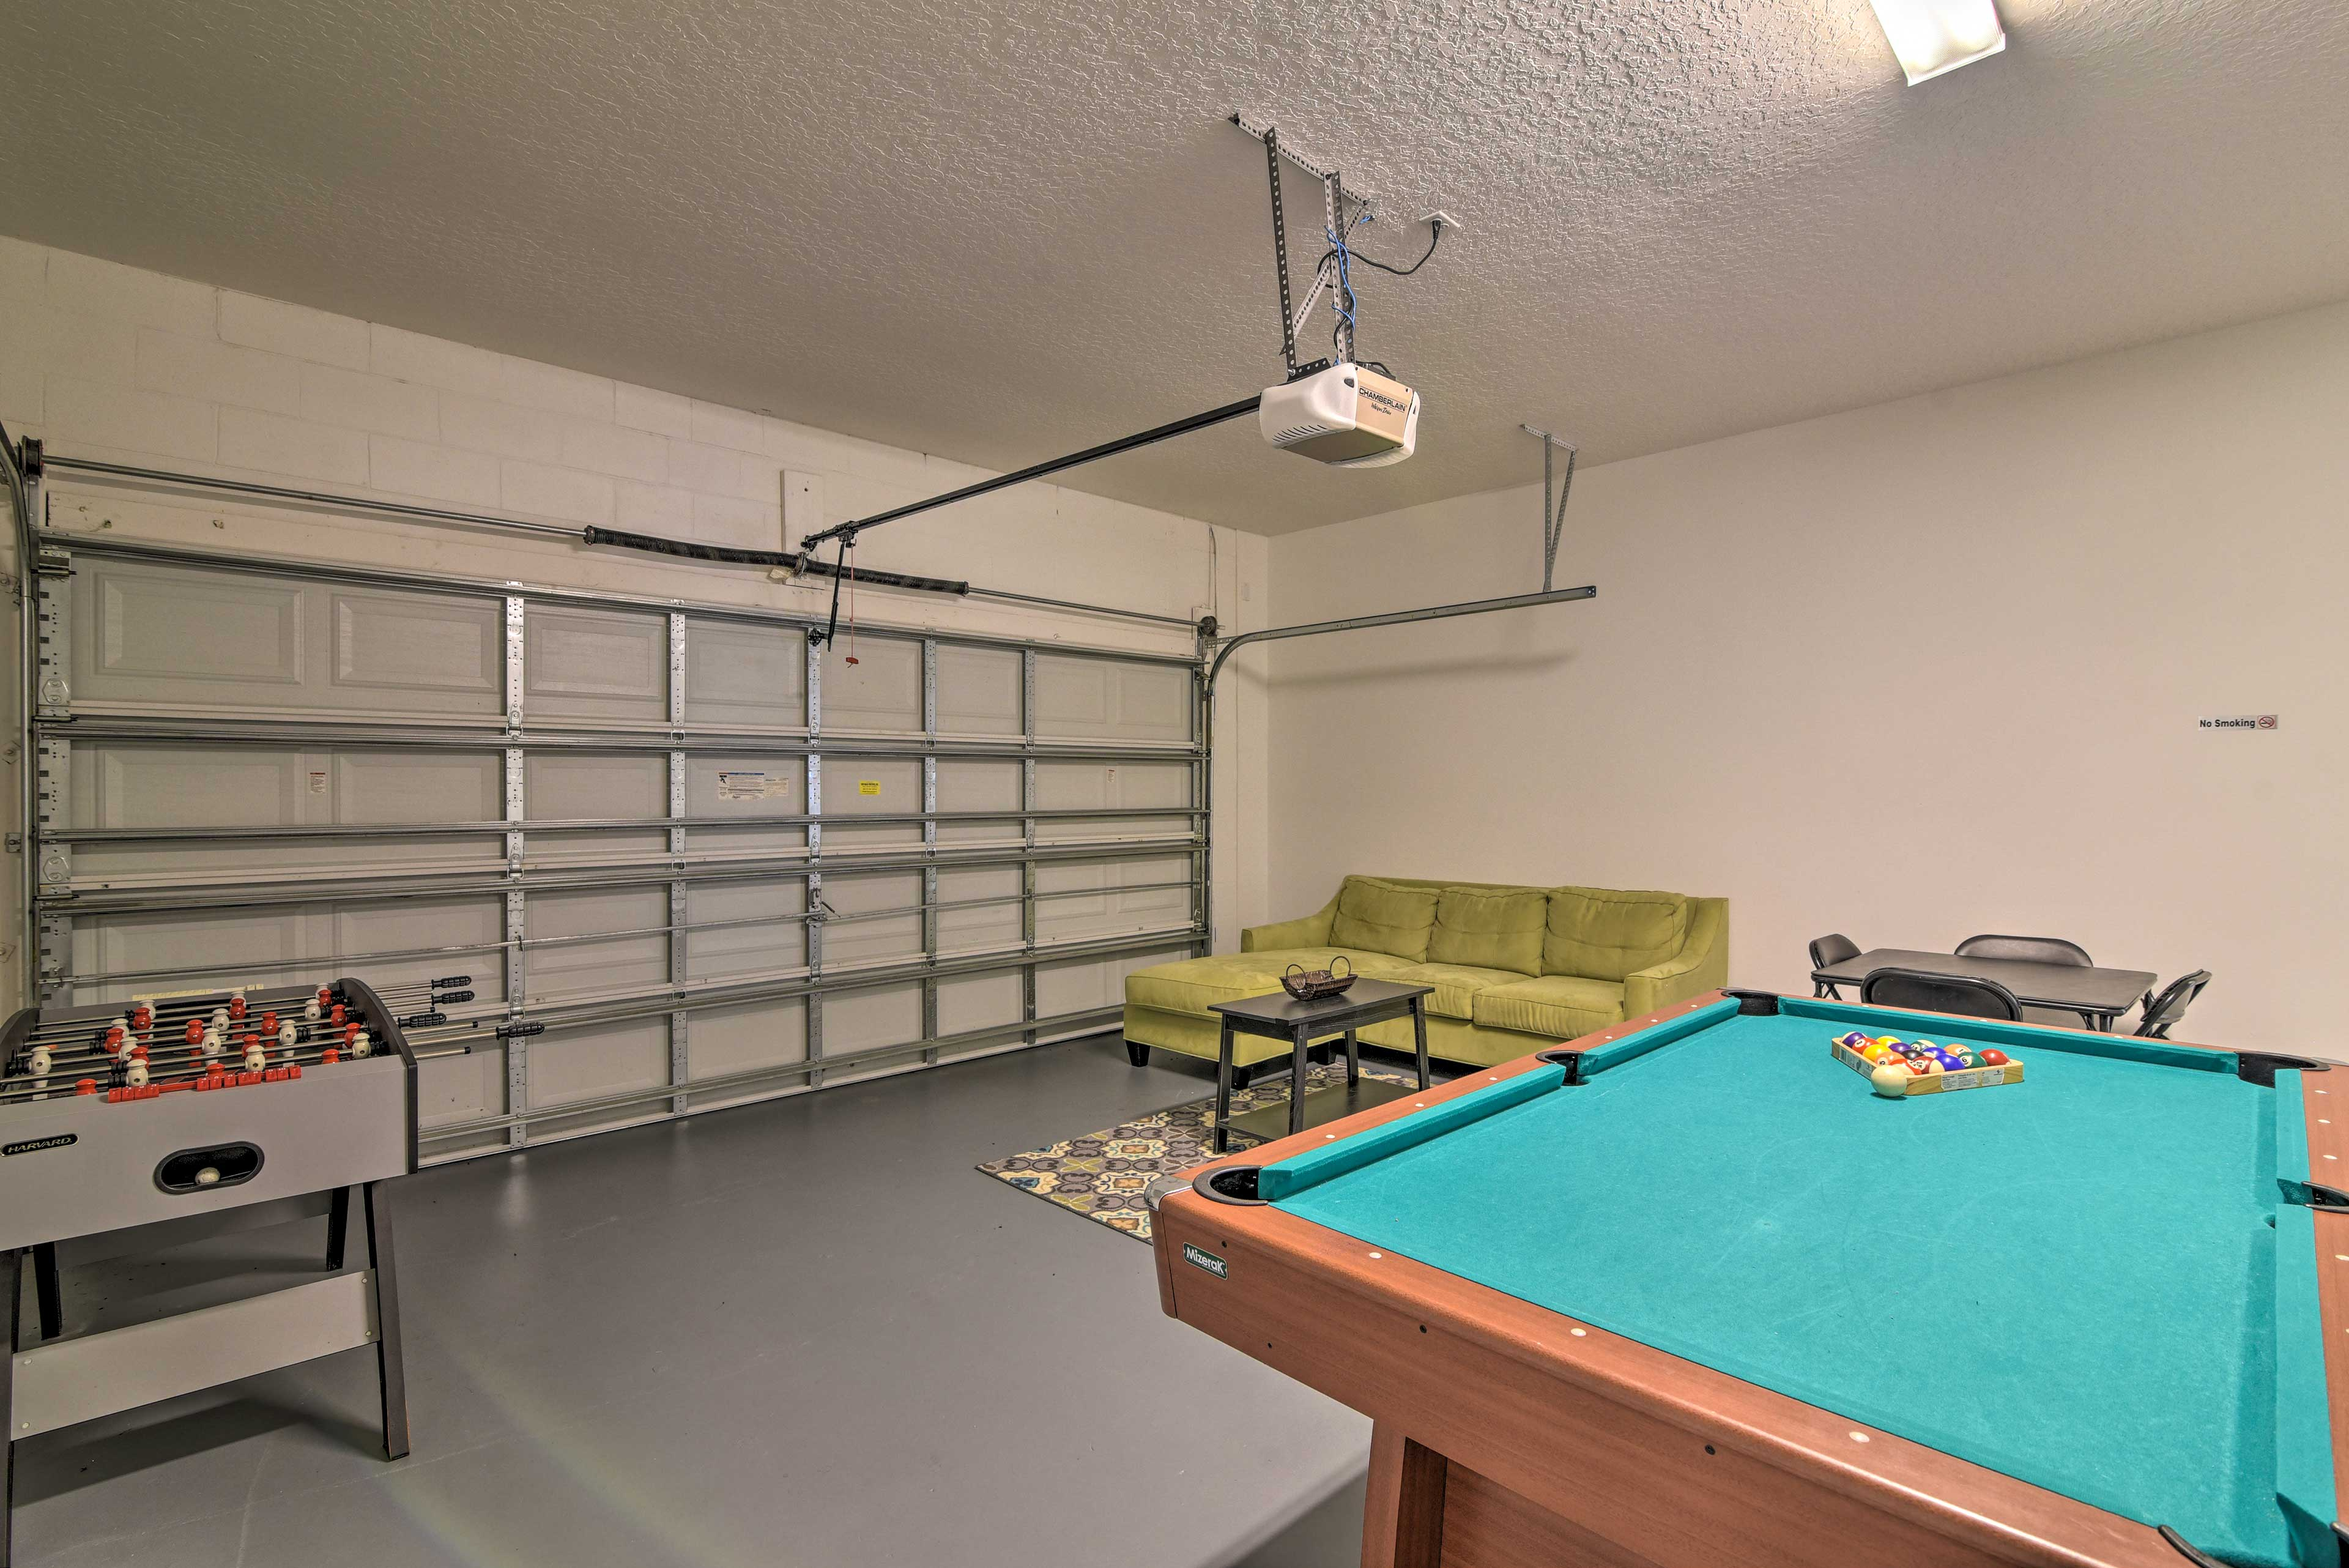 There is a pool table and foosball table in this room.